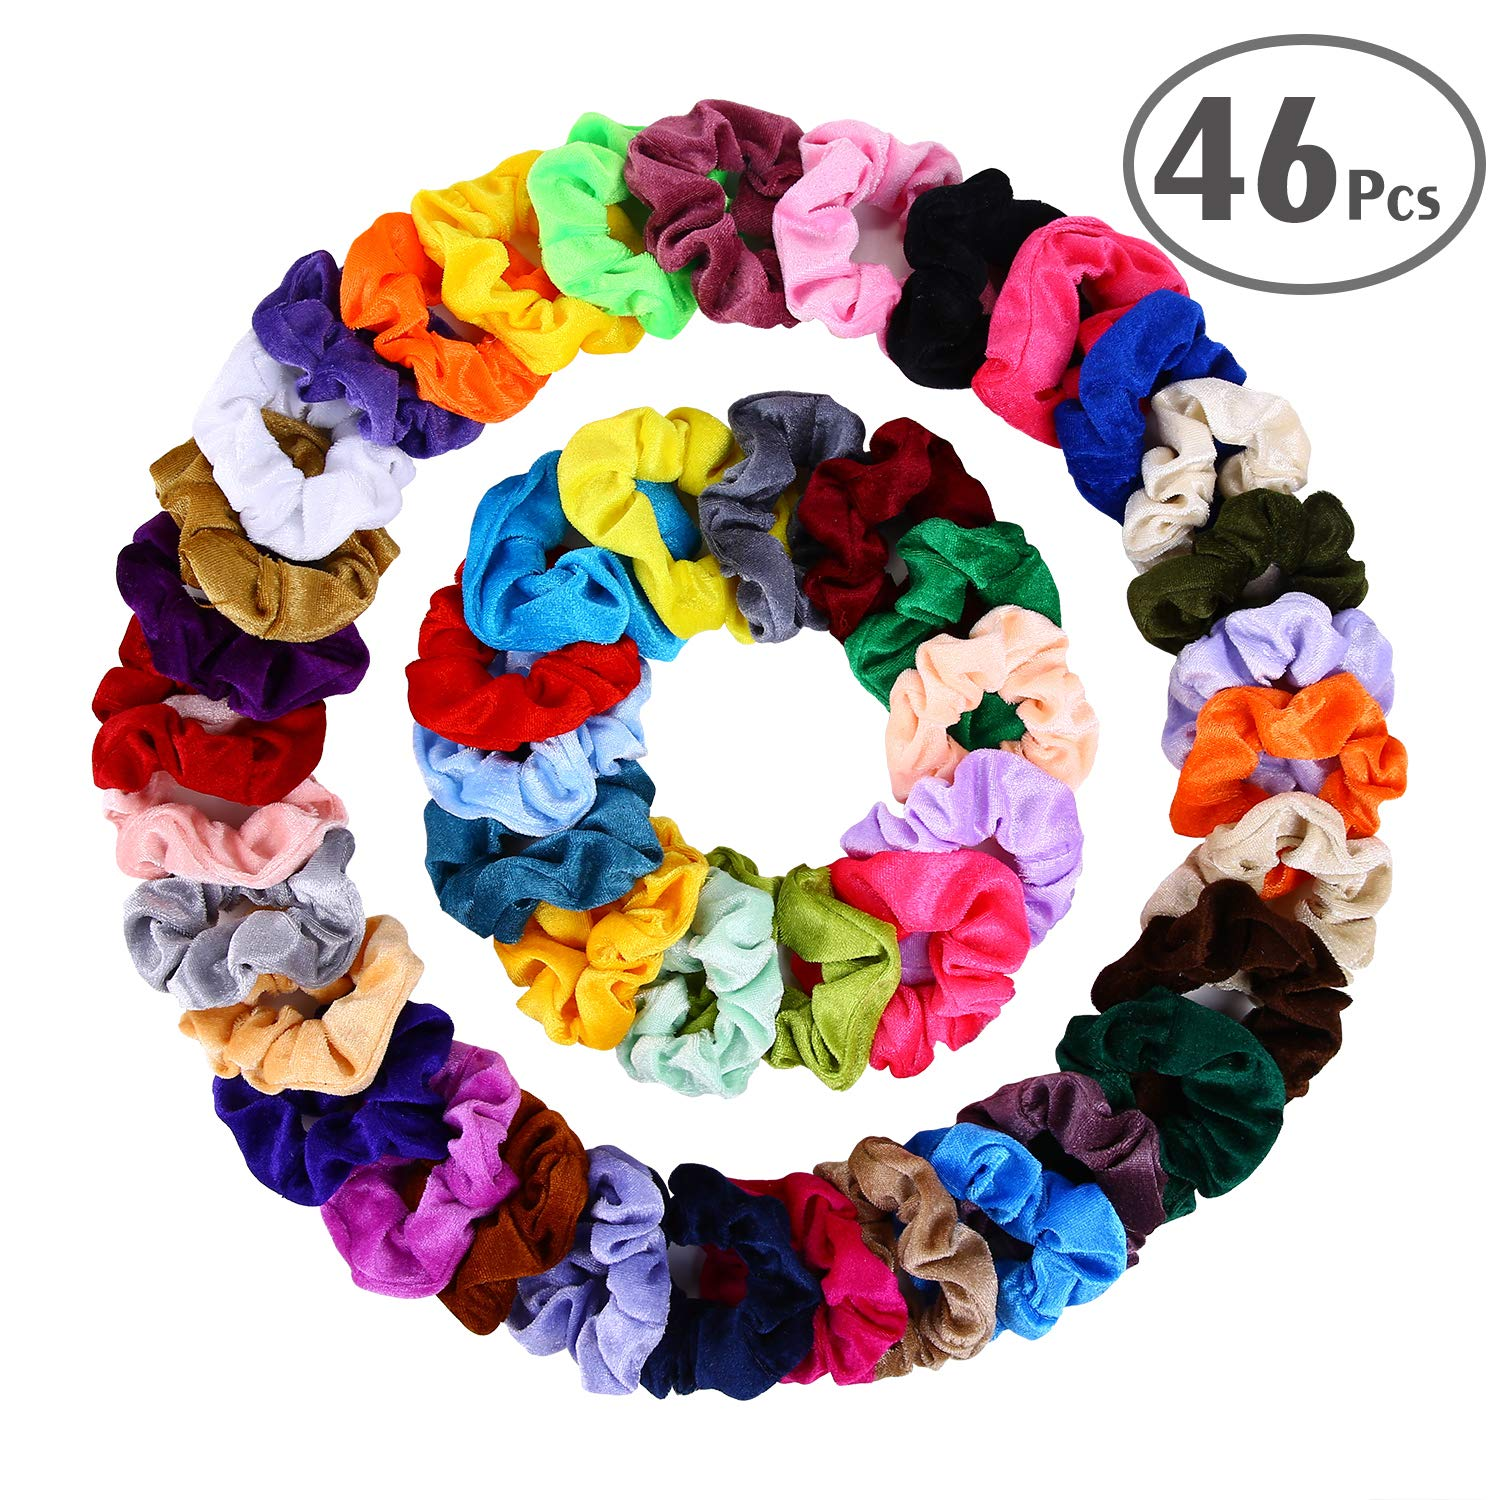 amazon.com - Hair Scrunchies Velvet Elastic Hair Bands